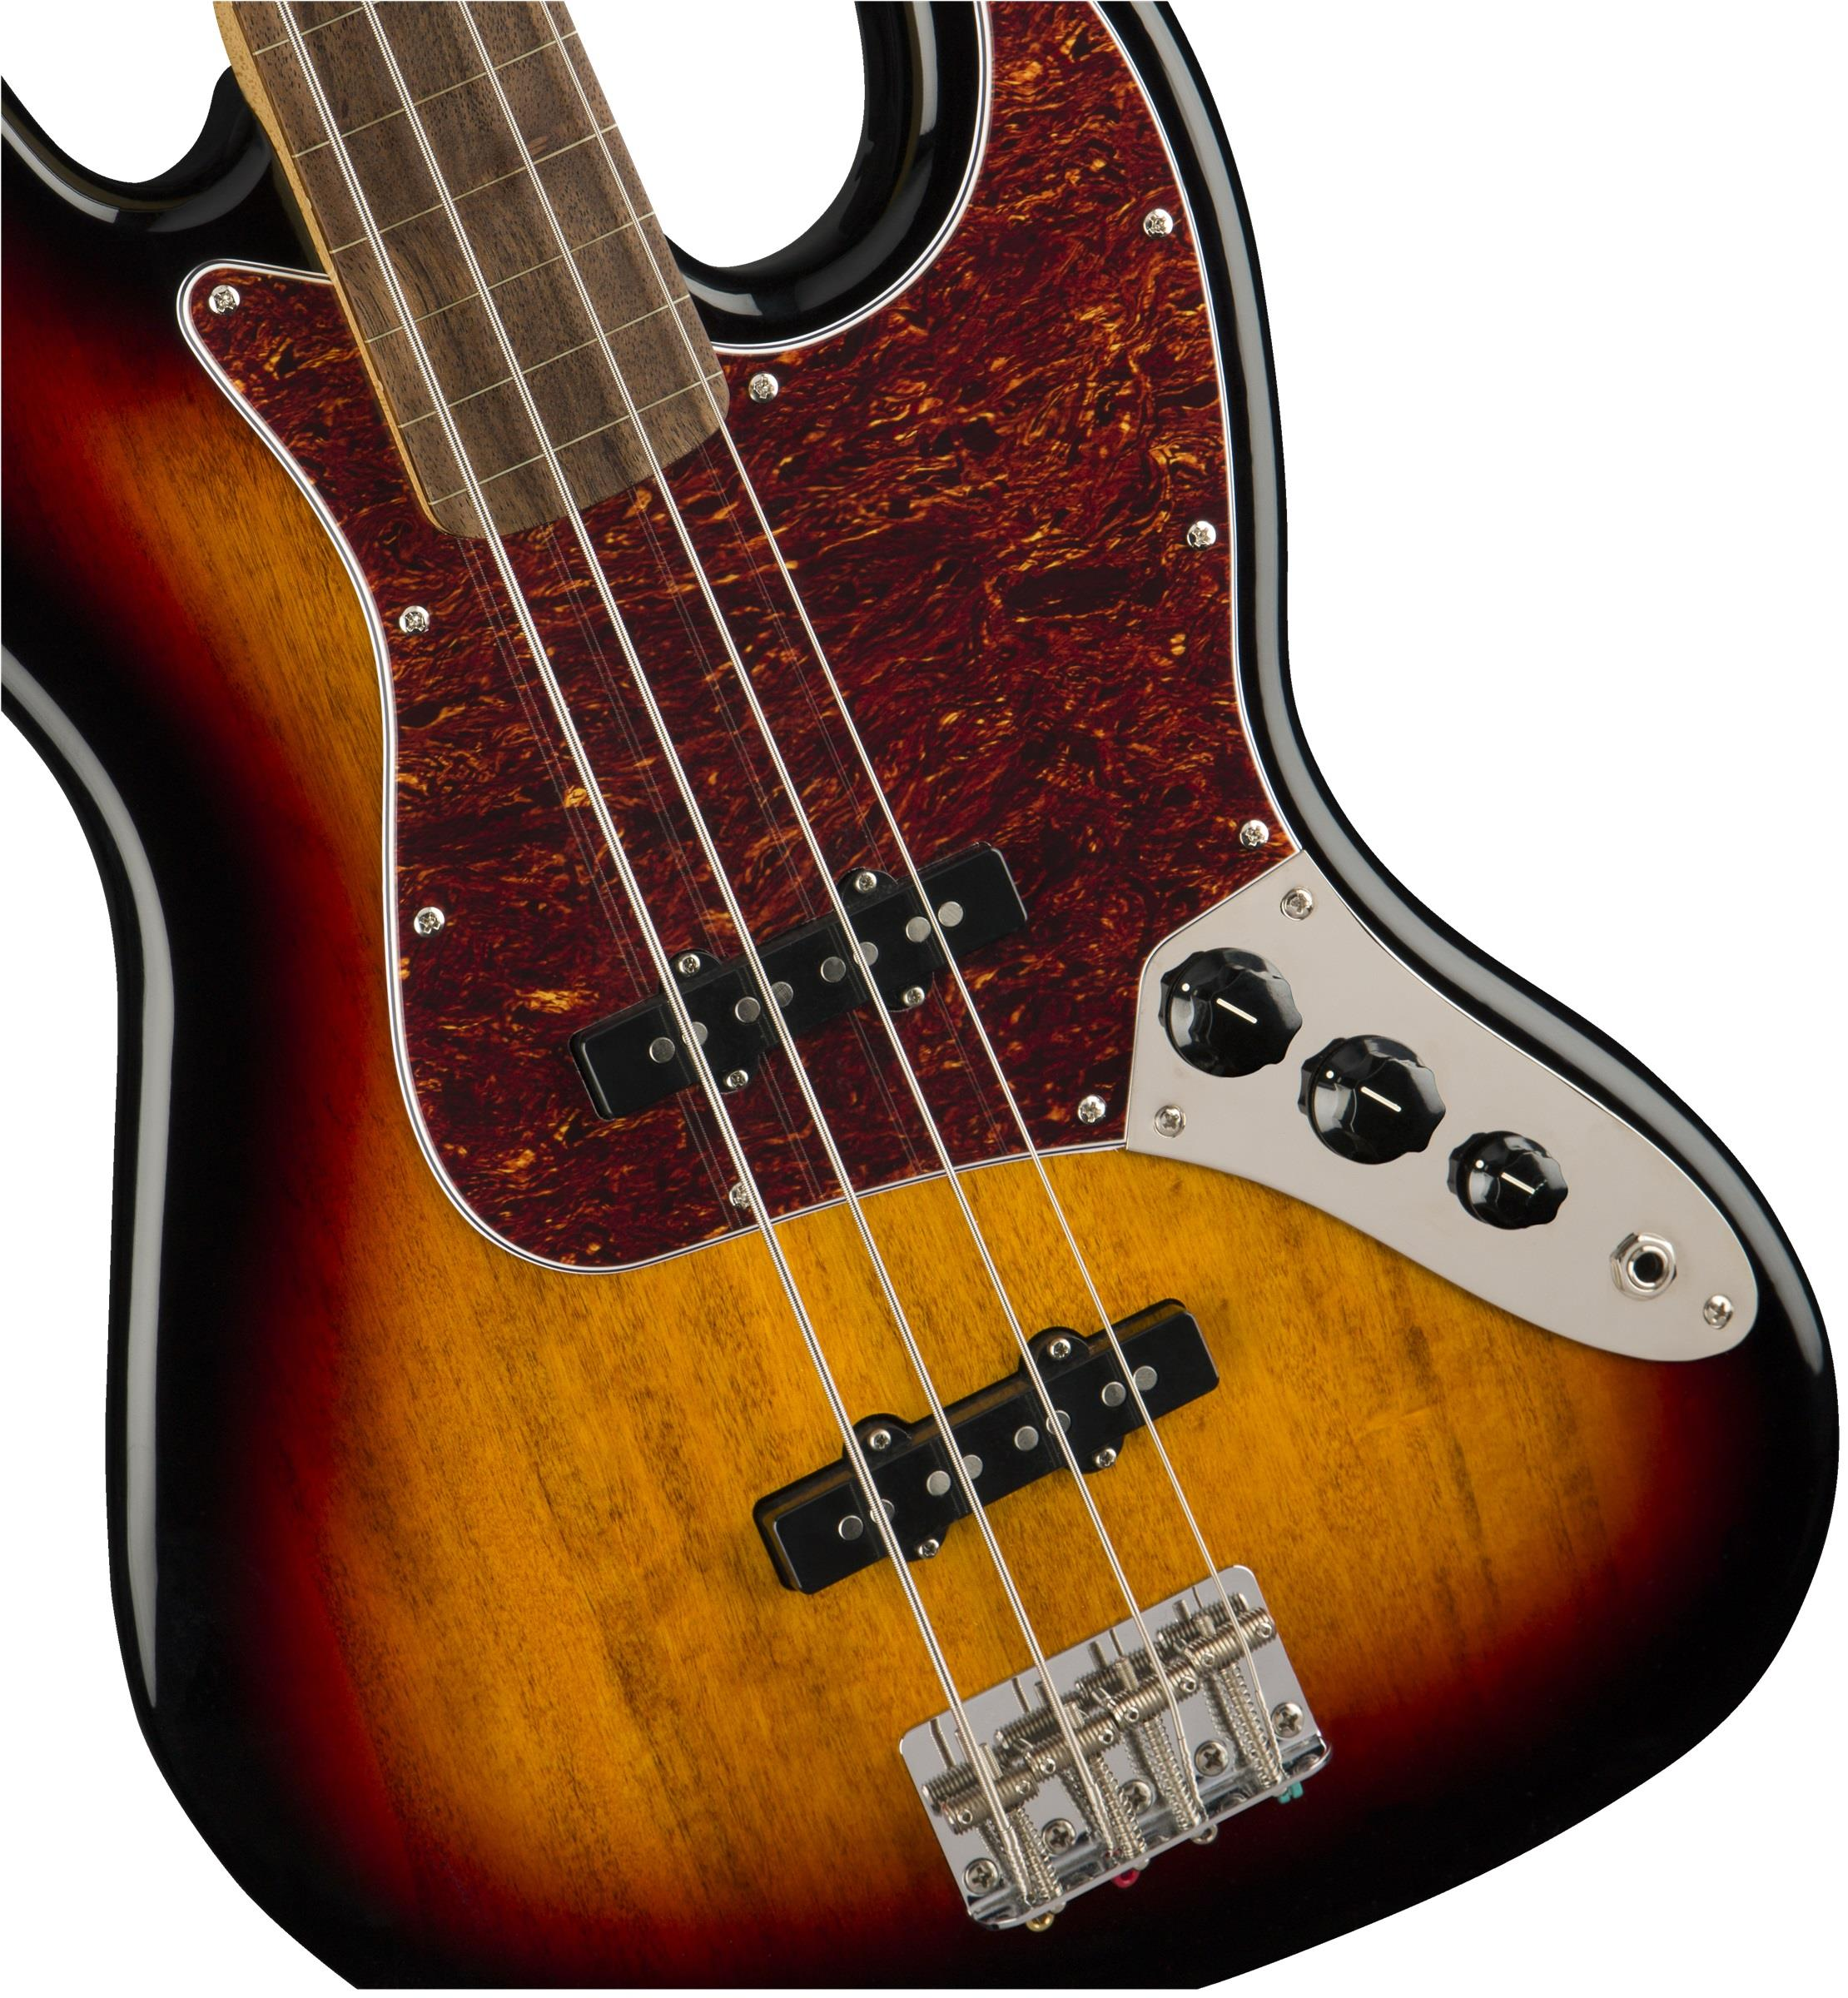 squier classic vibe  u0026 39 60s jazz bass fretless lrl 3 color sunburst